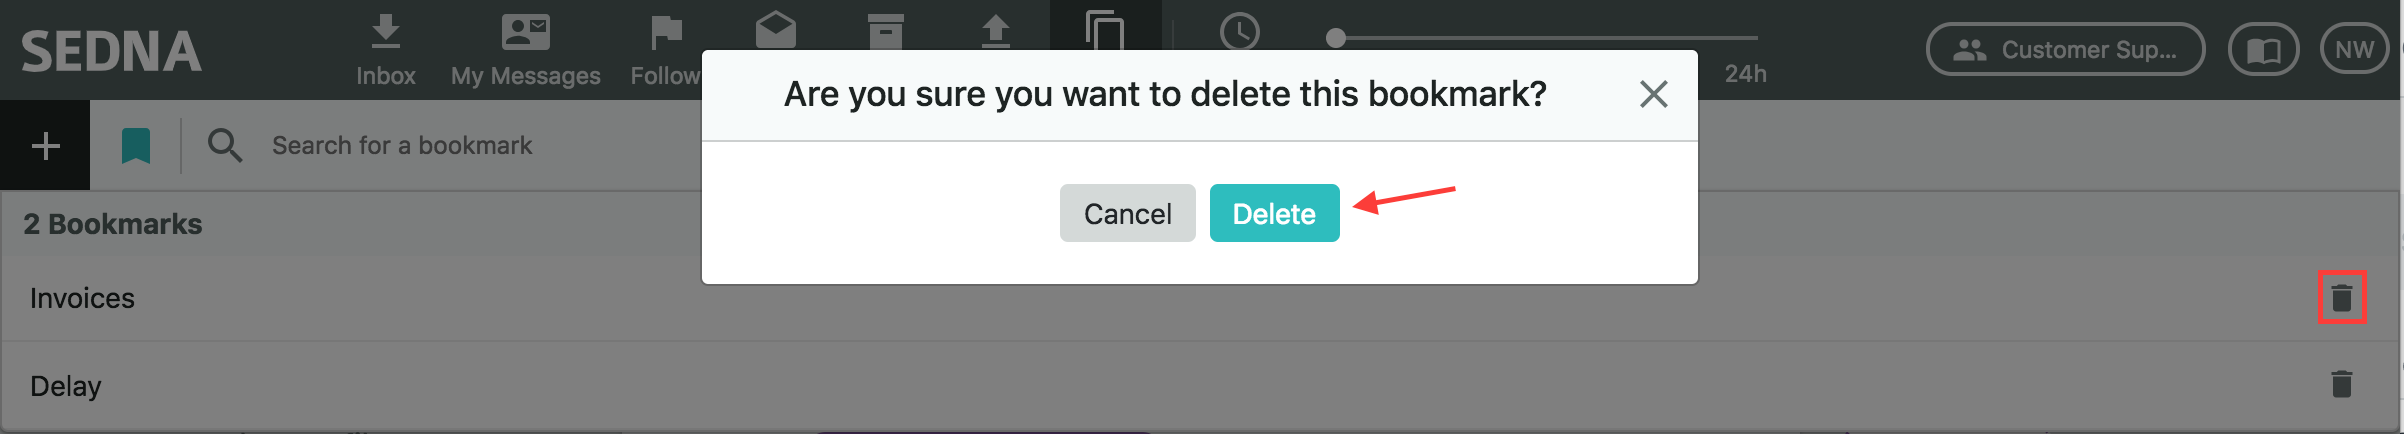 Delete_Bookmark.png